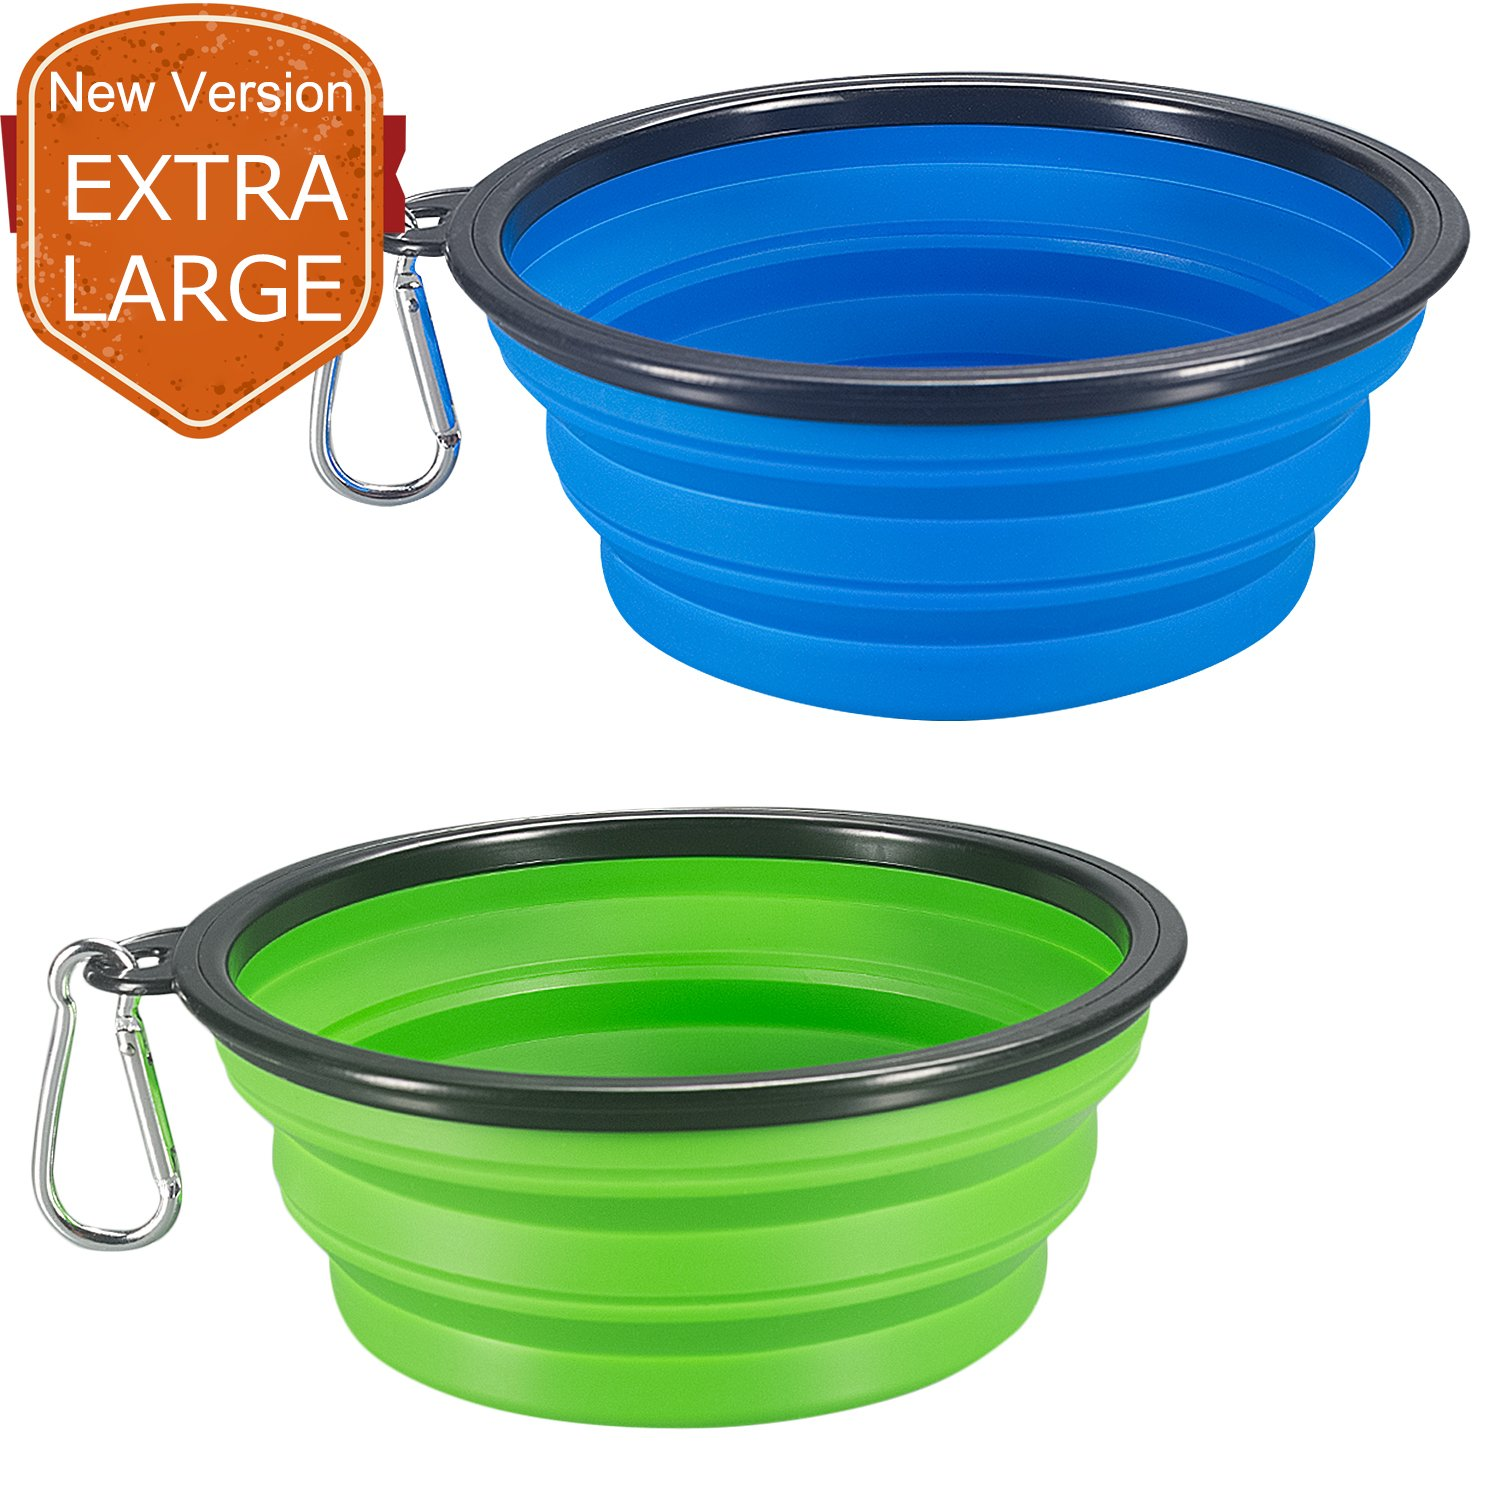 COMSUN 2-Pack Extra Large Size Collapsible Dog Bowl, Foldable Expandable Cup Dish for Pet Cat Food Water Feeding Portable Travel Bowl Blue and Green Free Carabiner